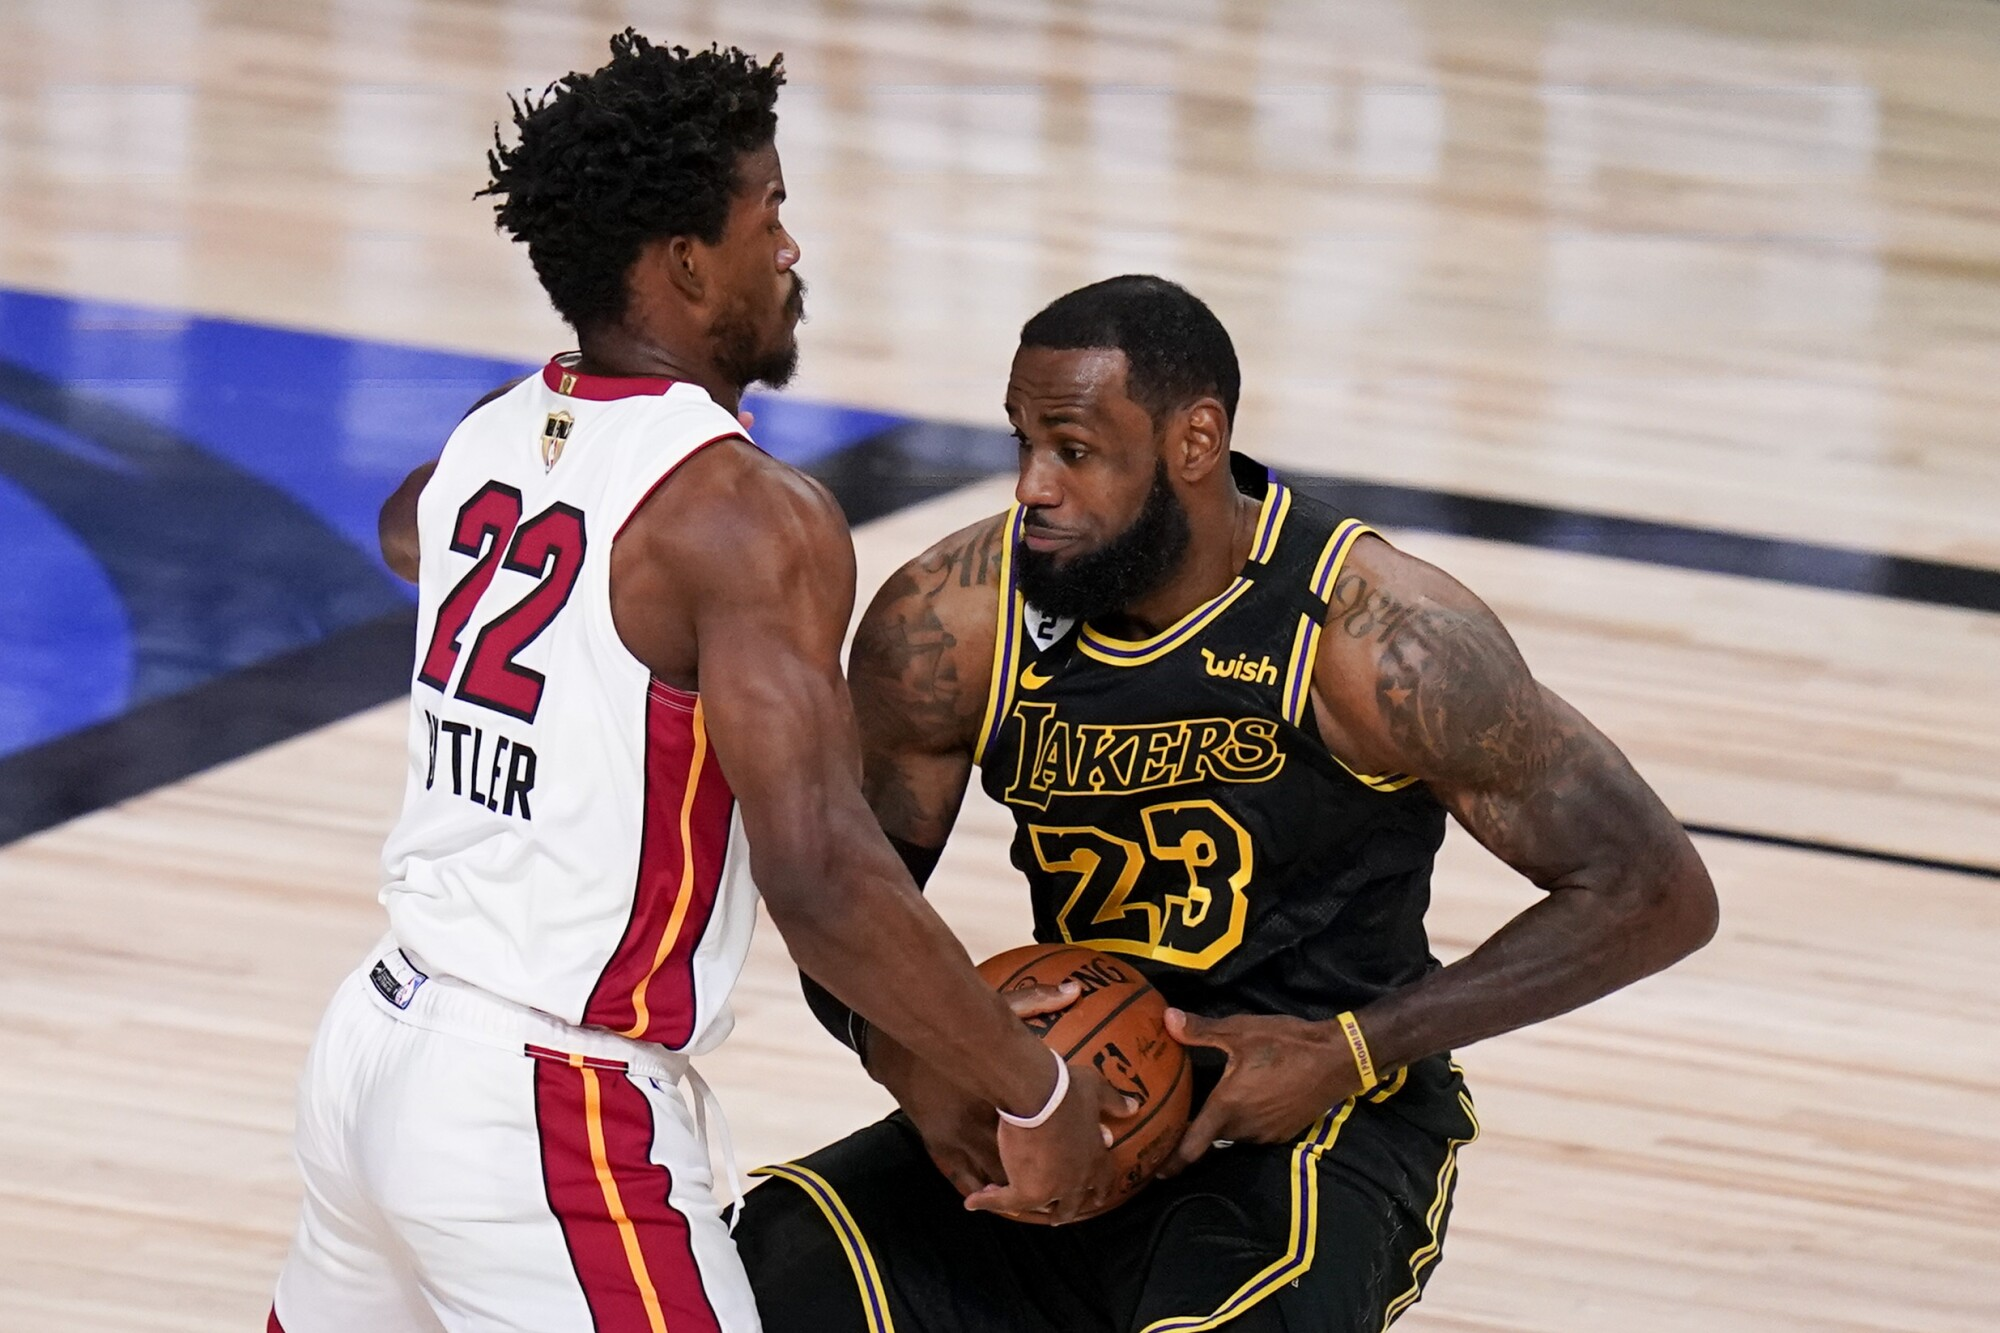 Heat forward Jimmy Butler tries to steal the ball from Lakers forward LeBron James during Game 5 on Friday night.